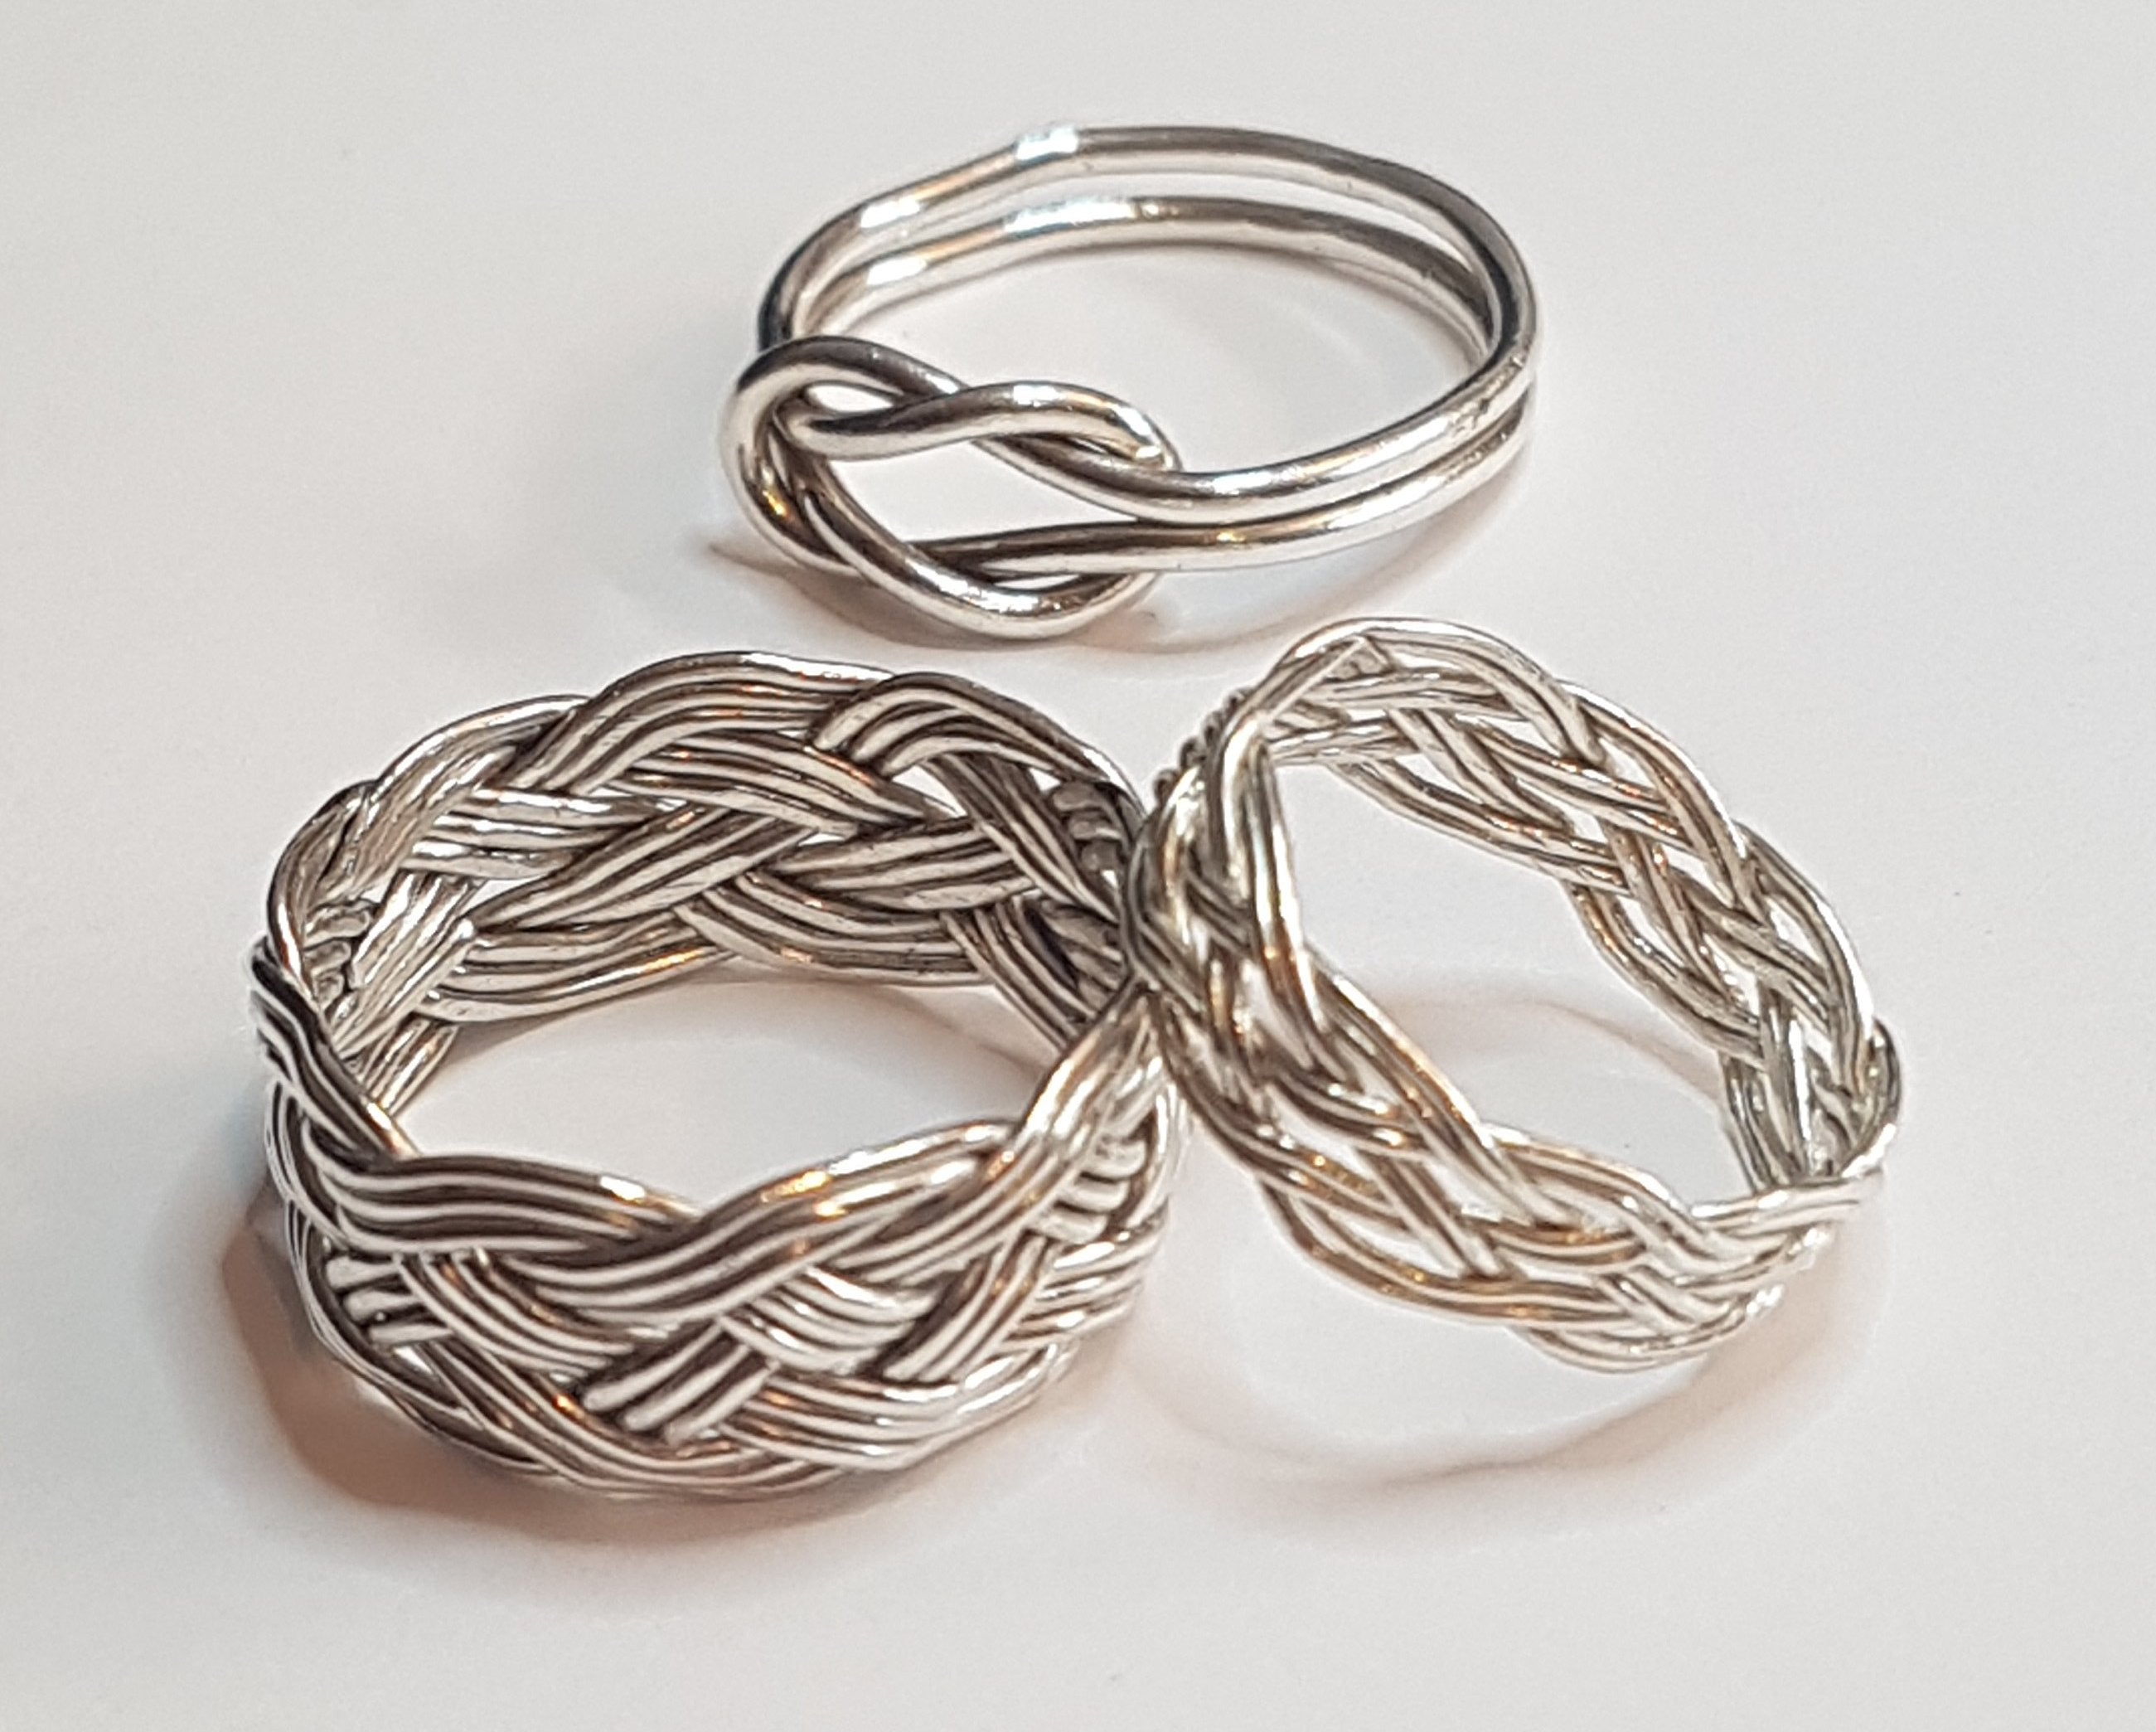 silver rings, Turks Head, Reef knot